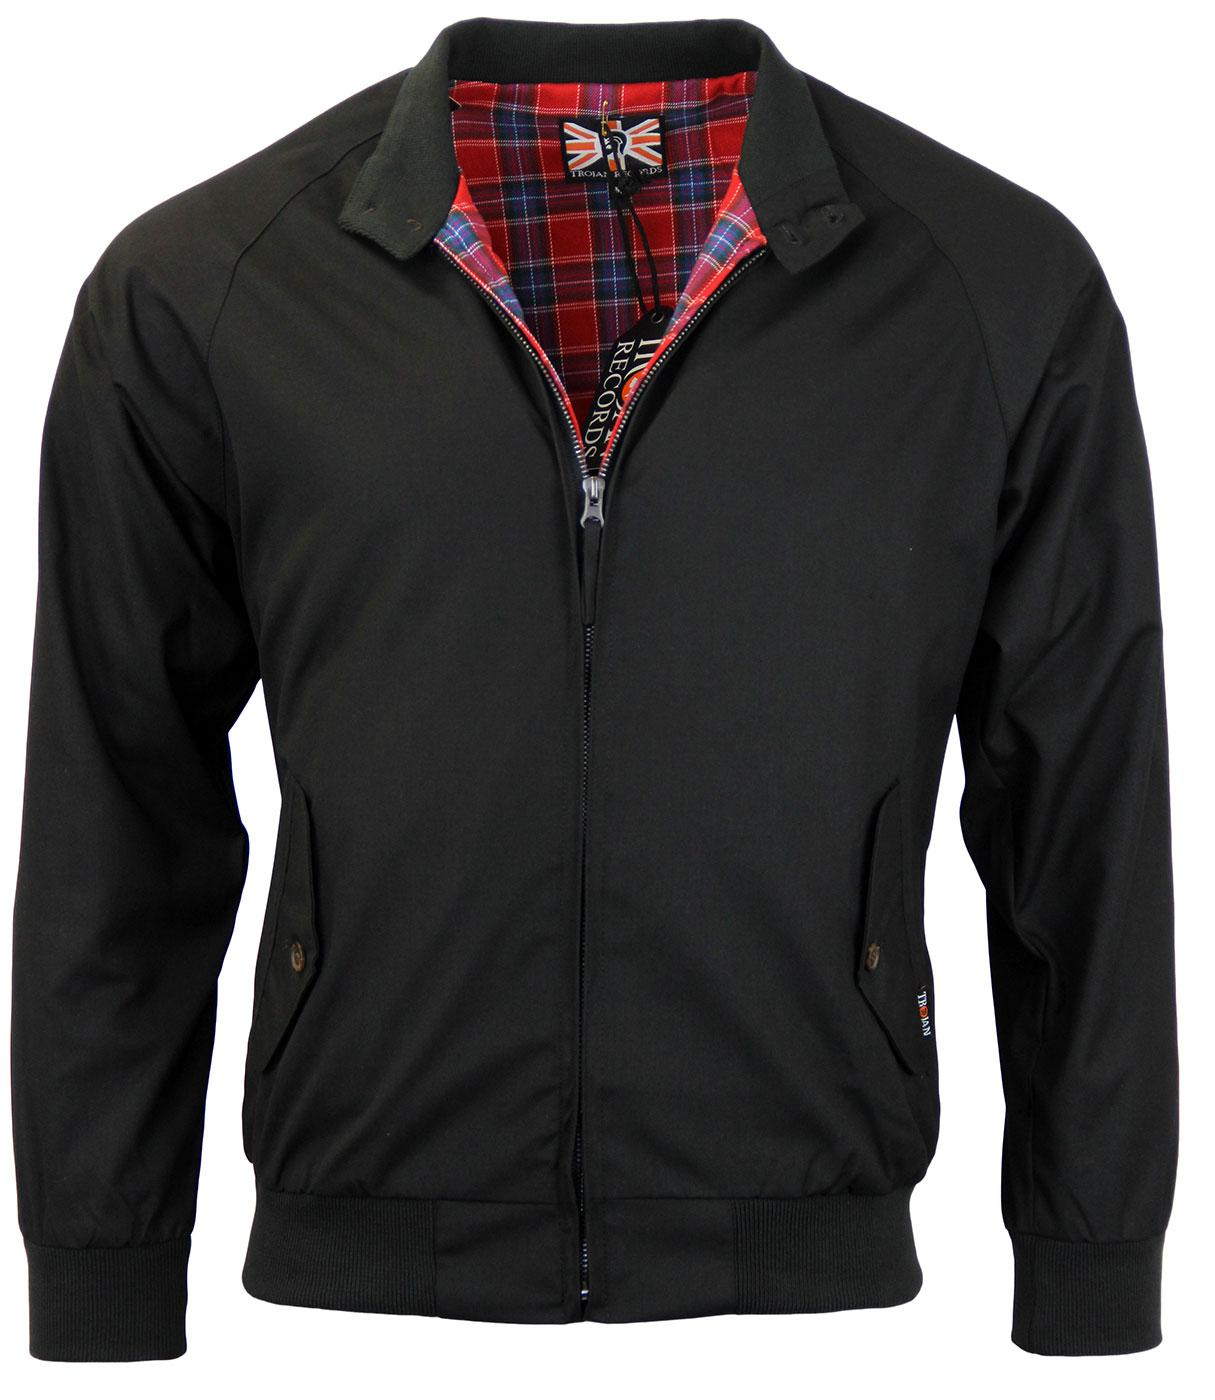 TROJAN Retro Mod Tartan Lined Harrington Jacket